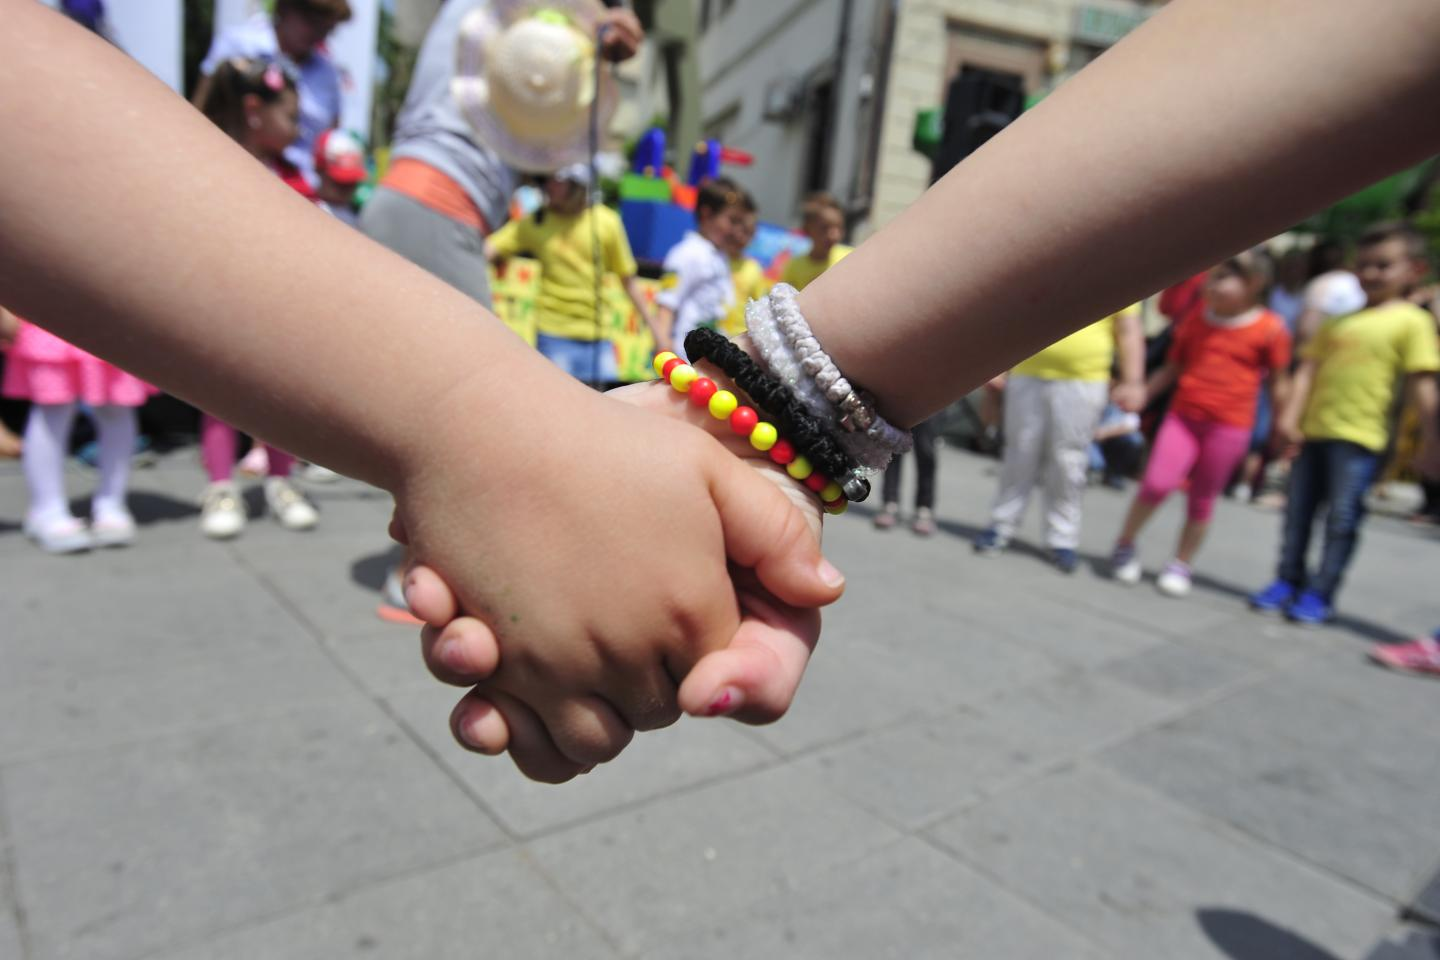 Close up image of the hands of two children holding each other's hand